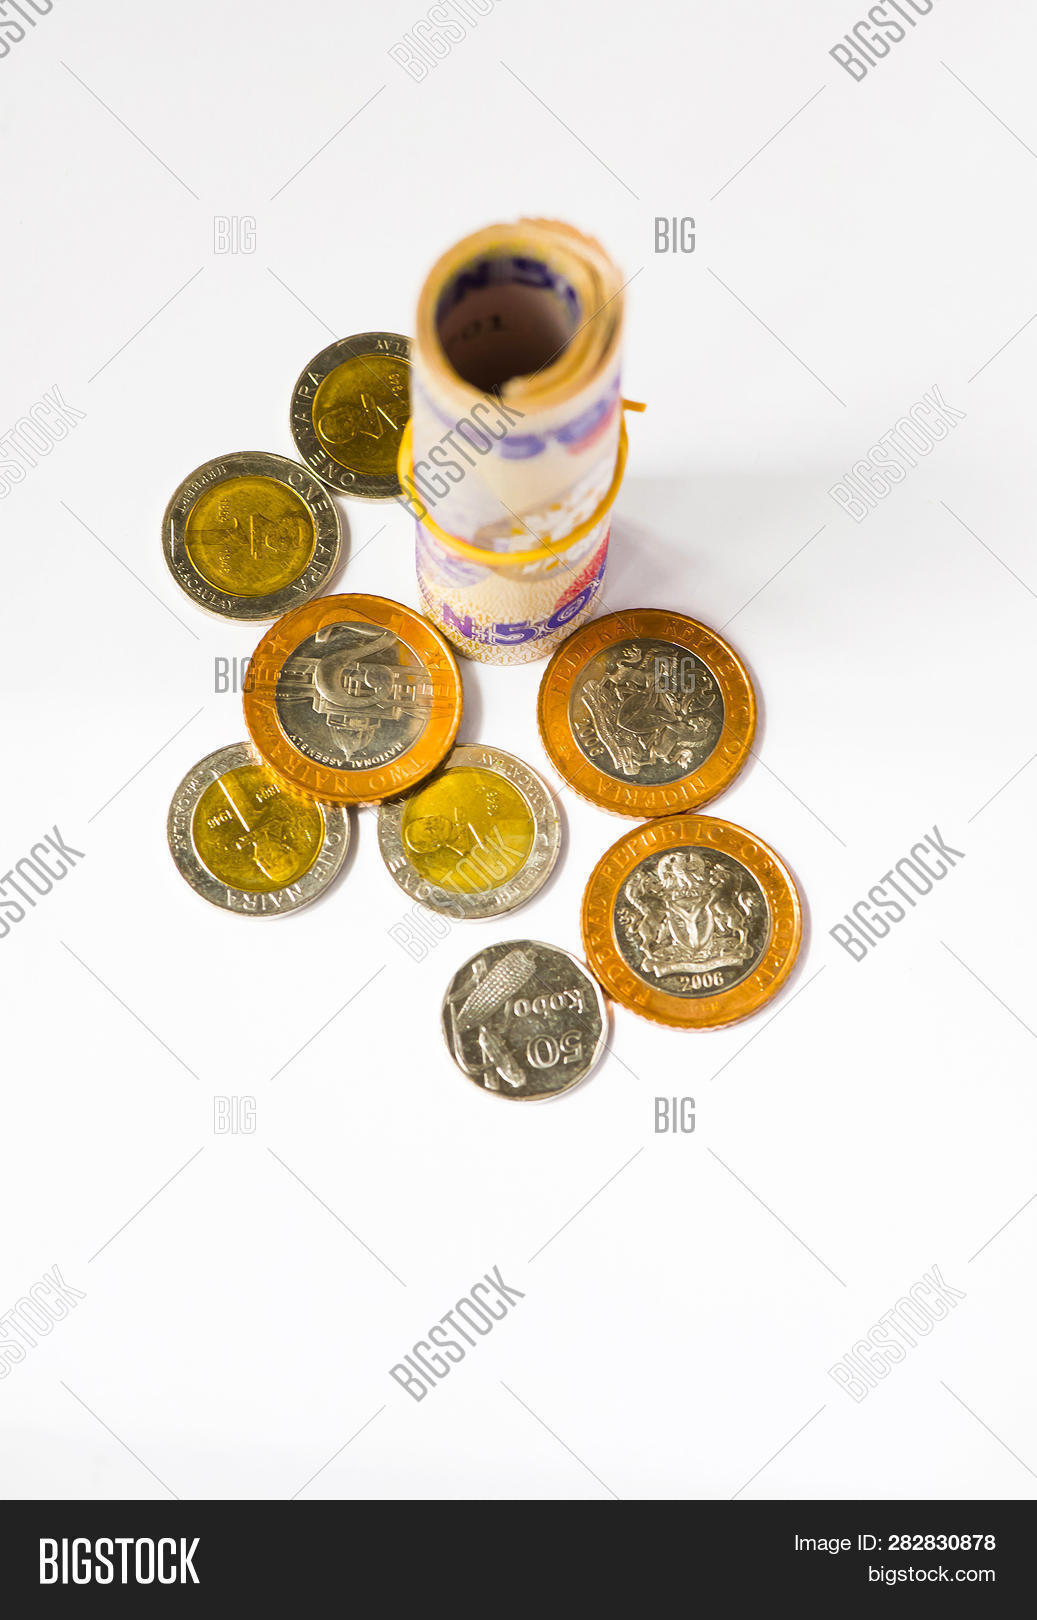 Nigerian Currency - Image & Photo (Free Trial) | Bigstock